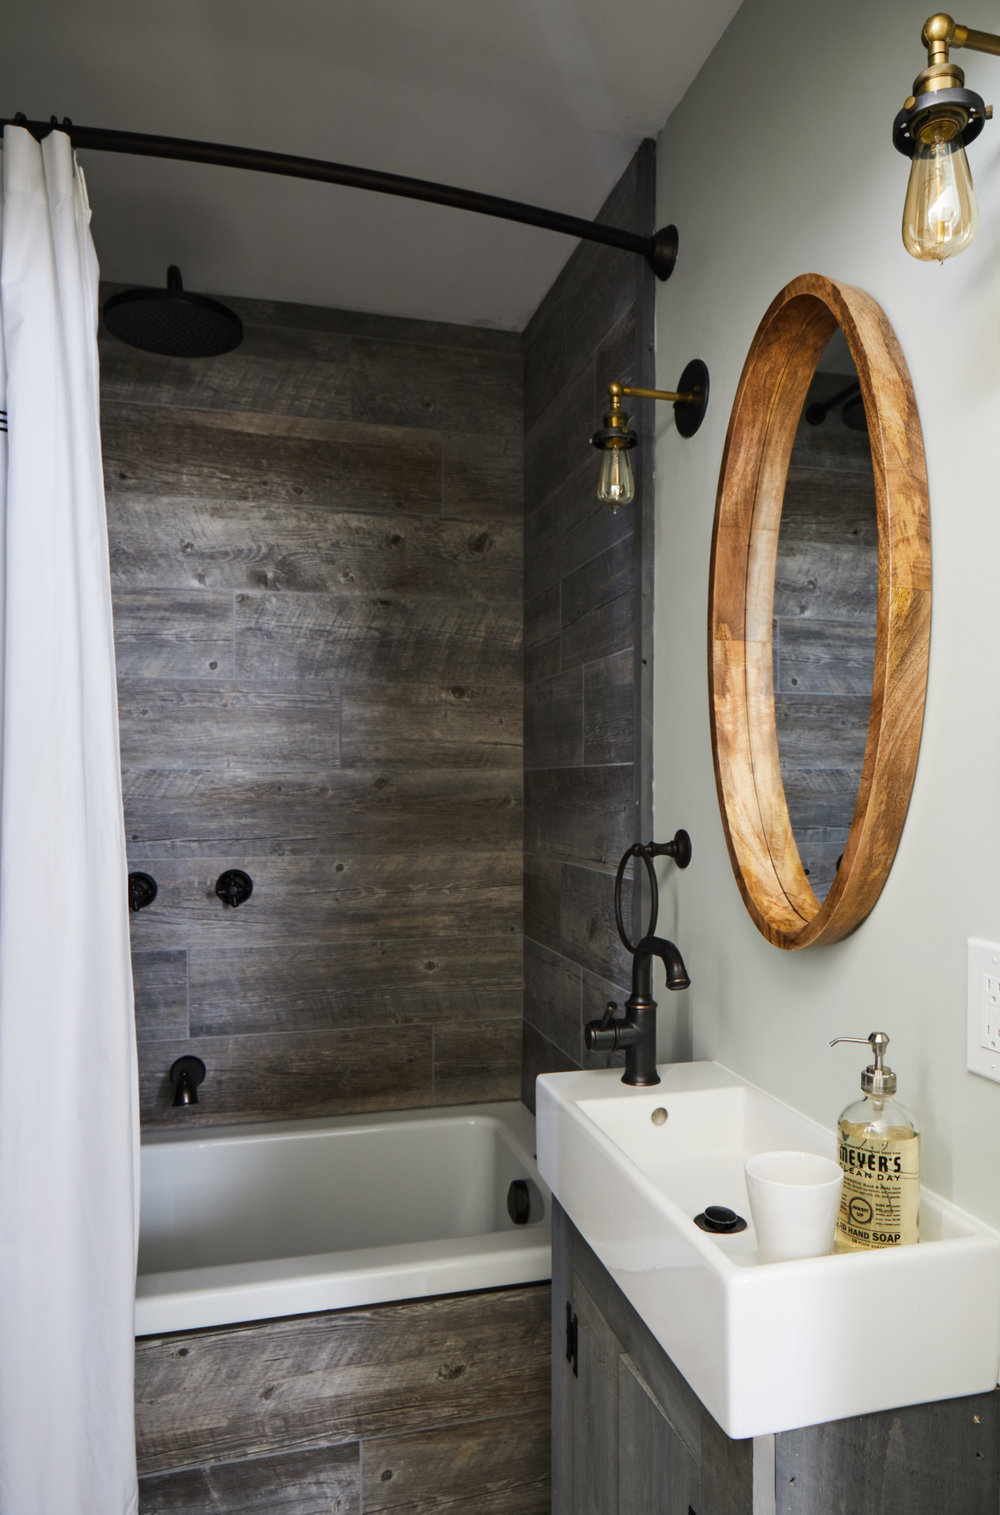 The Margaret Suite bathroom with wood paneling, white soaking dub and matching sink.